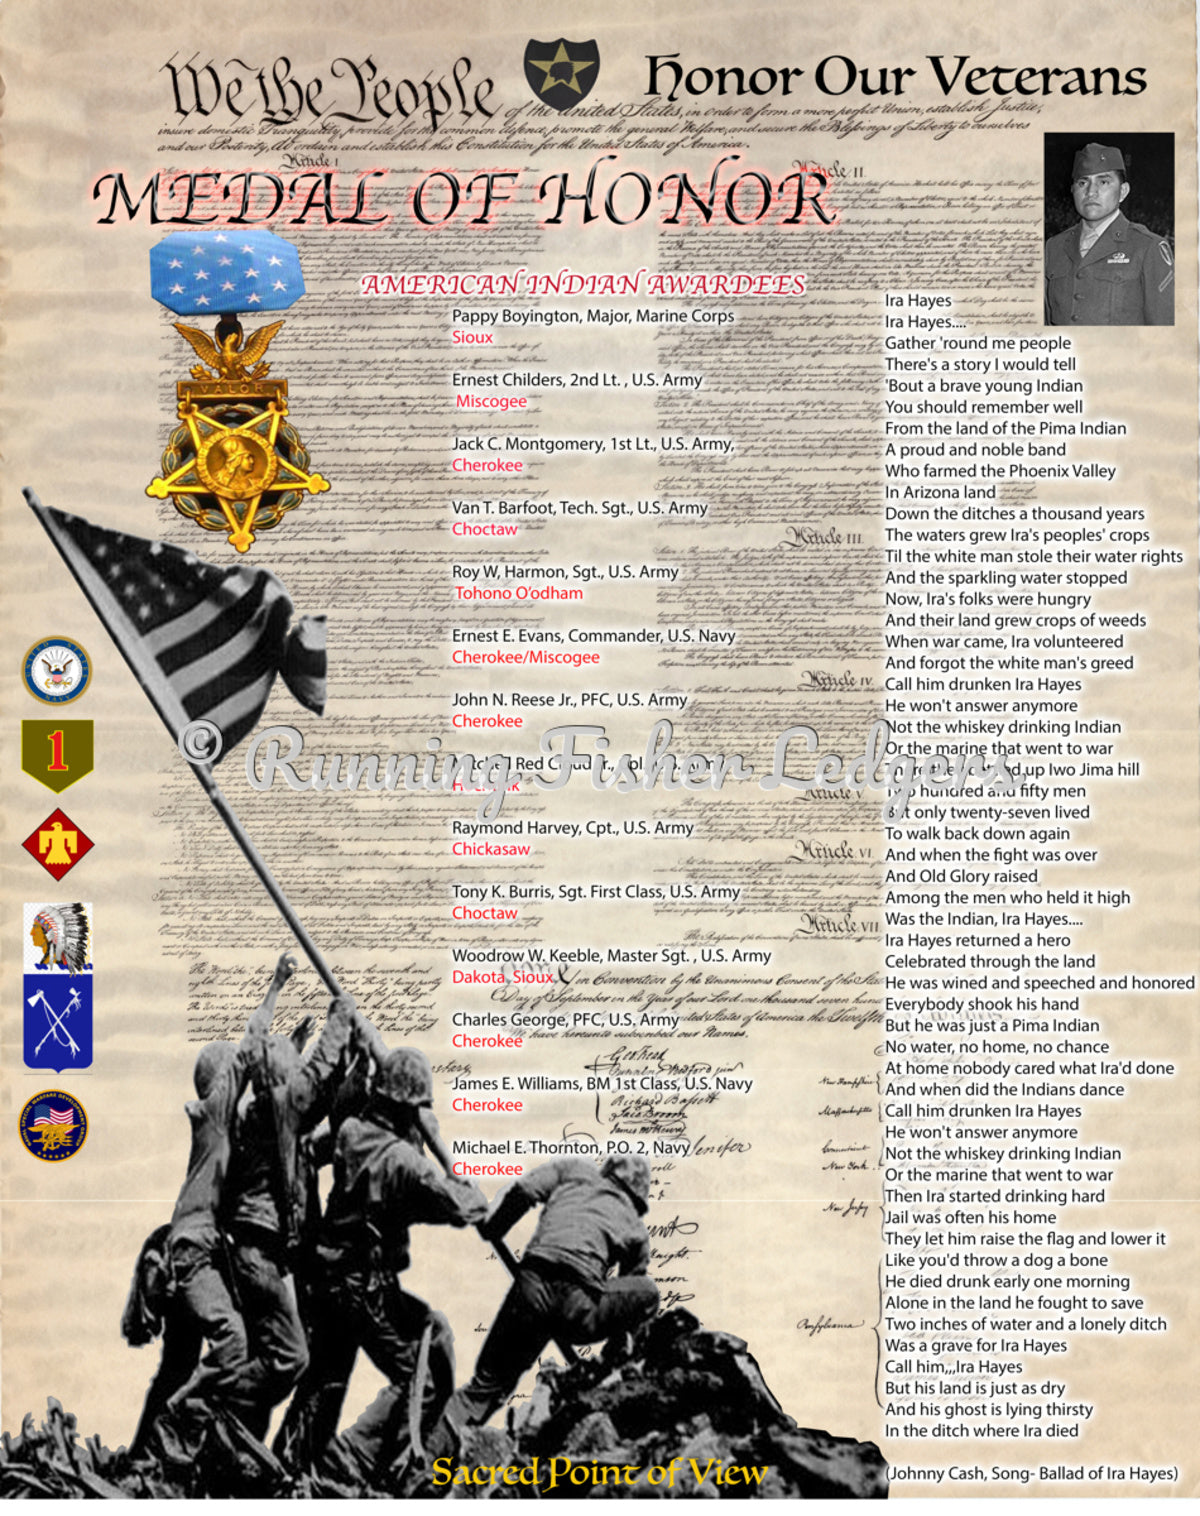 Medal of Honor Awardees